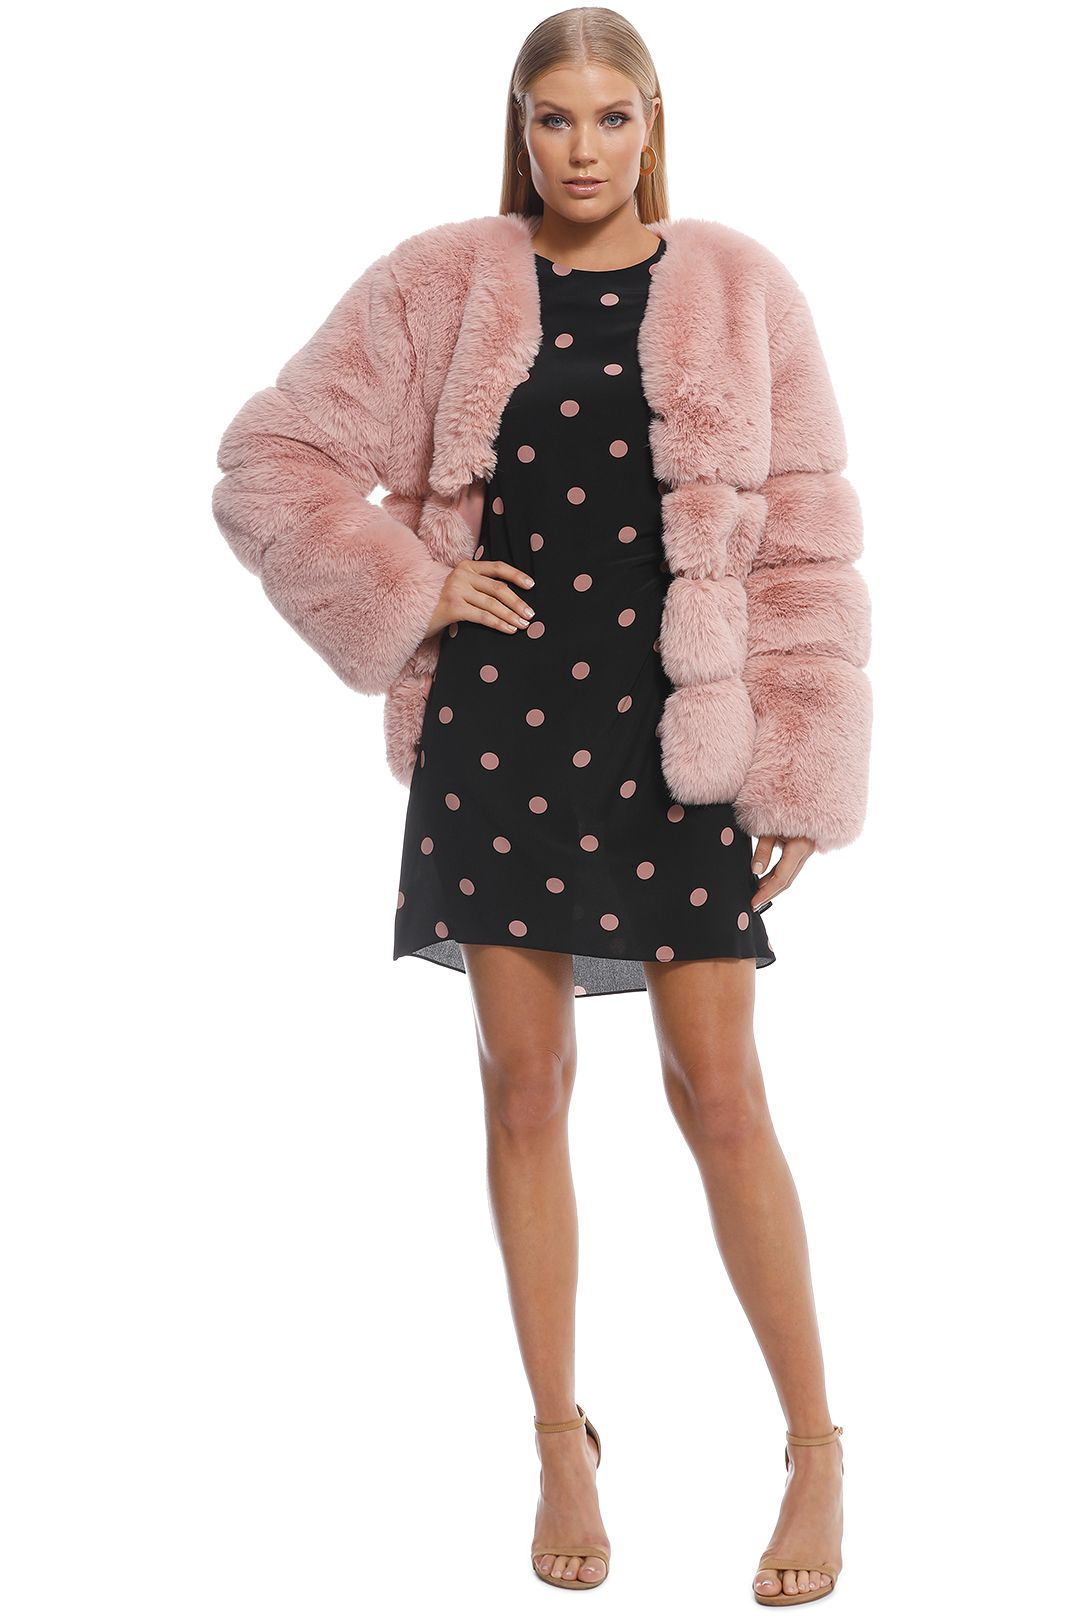 Keepsake the Label - Gleam Fur Coat - Dusty Pink - Front